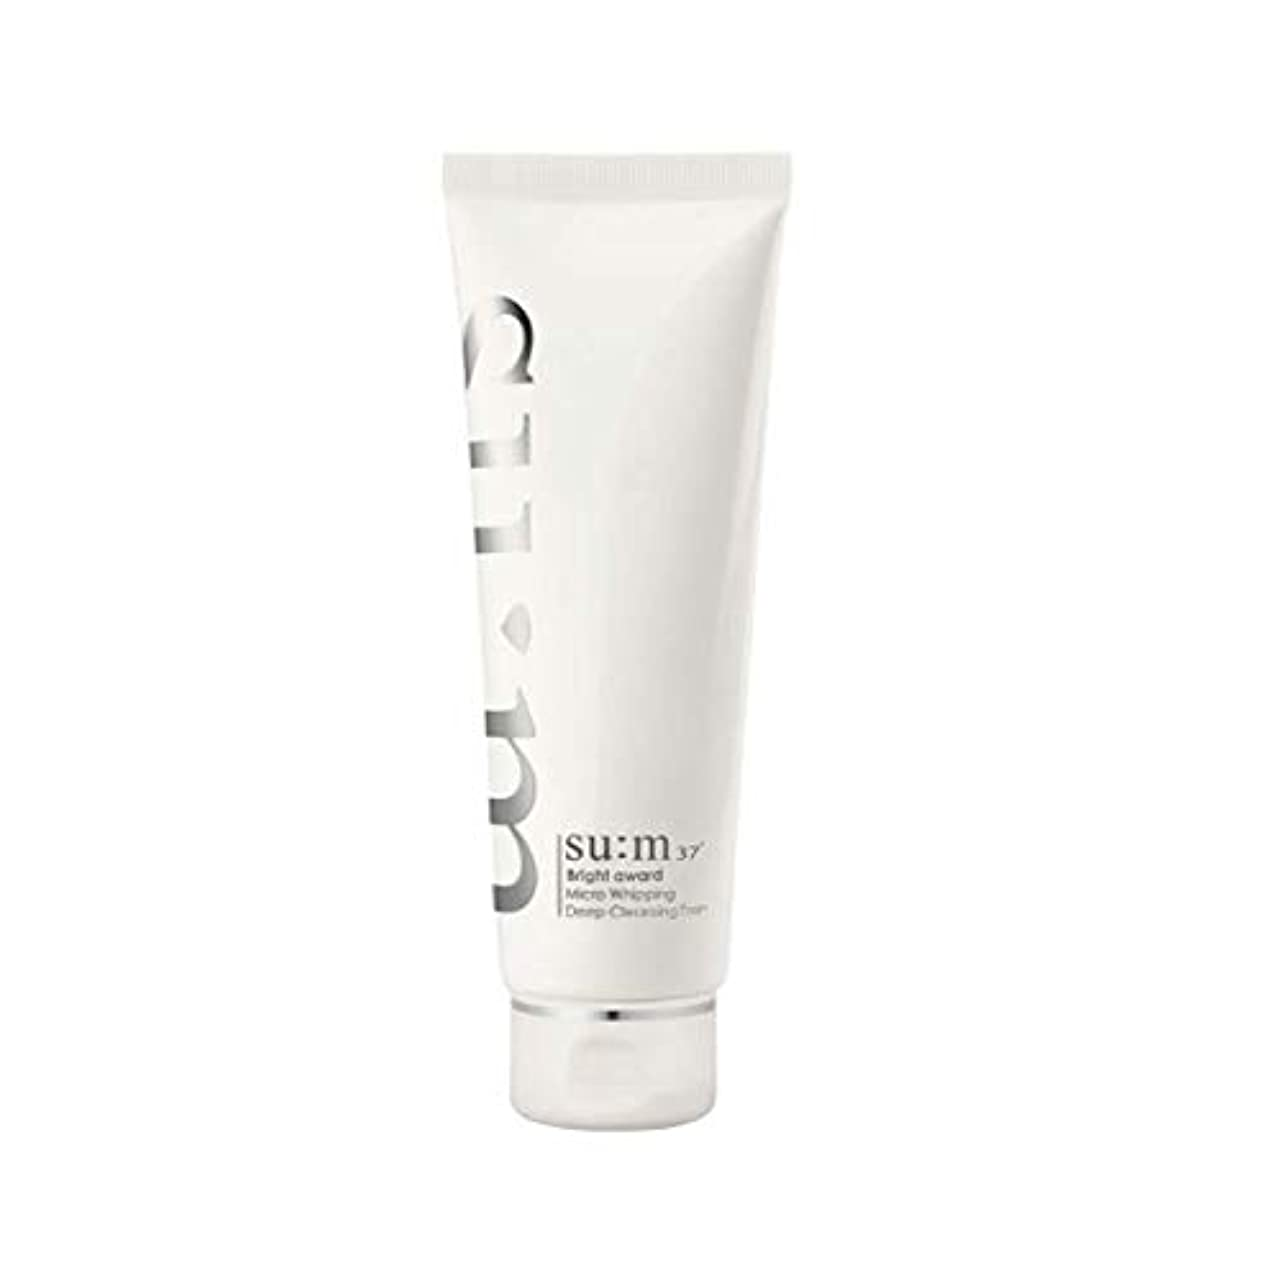 [su:m37/スム37°] SUM37 Bright Award Micro Whipping Deep Cleansing Foam(並行輸入品)